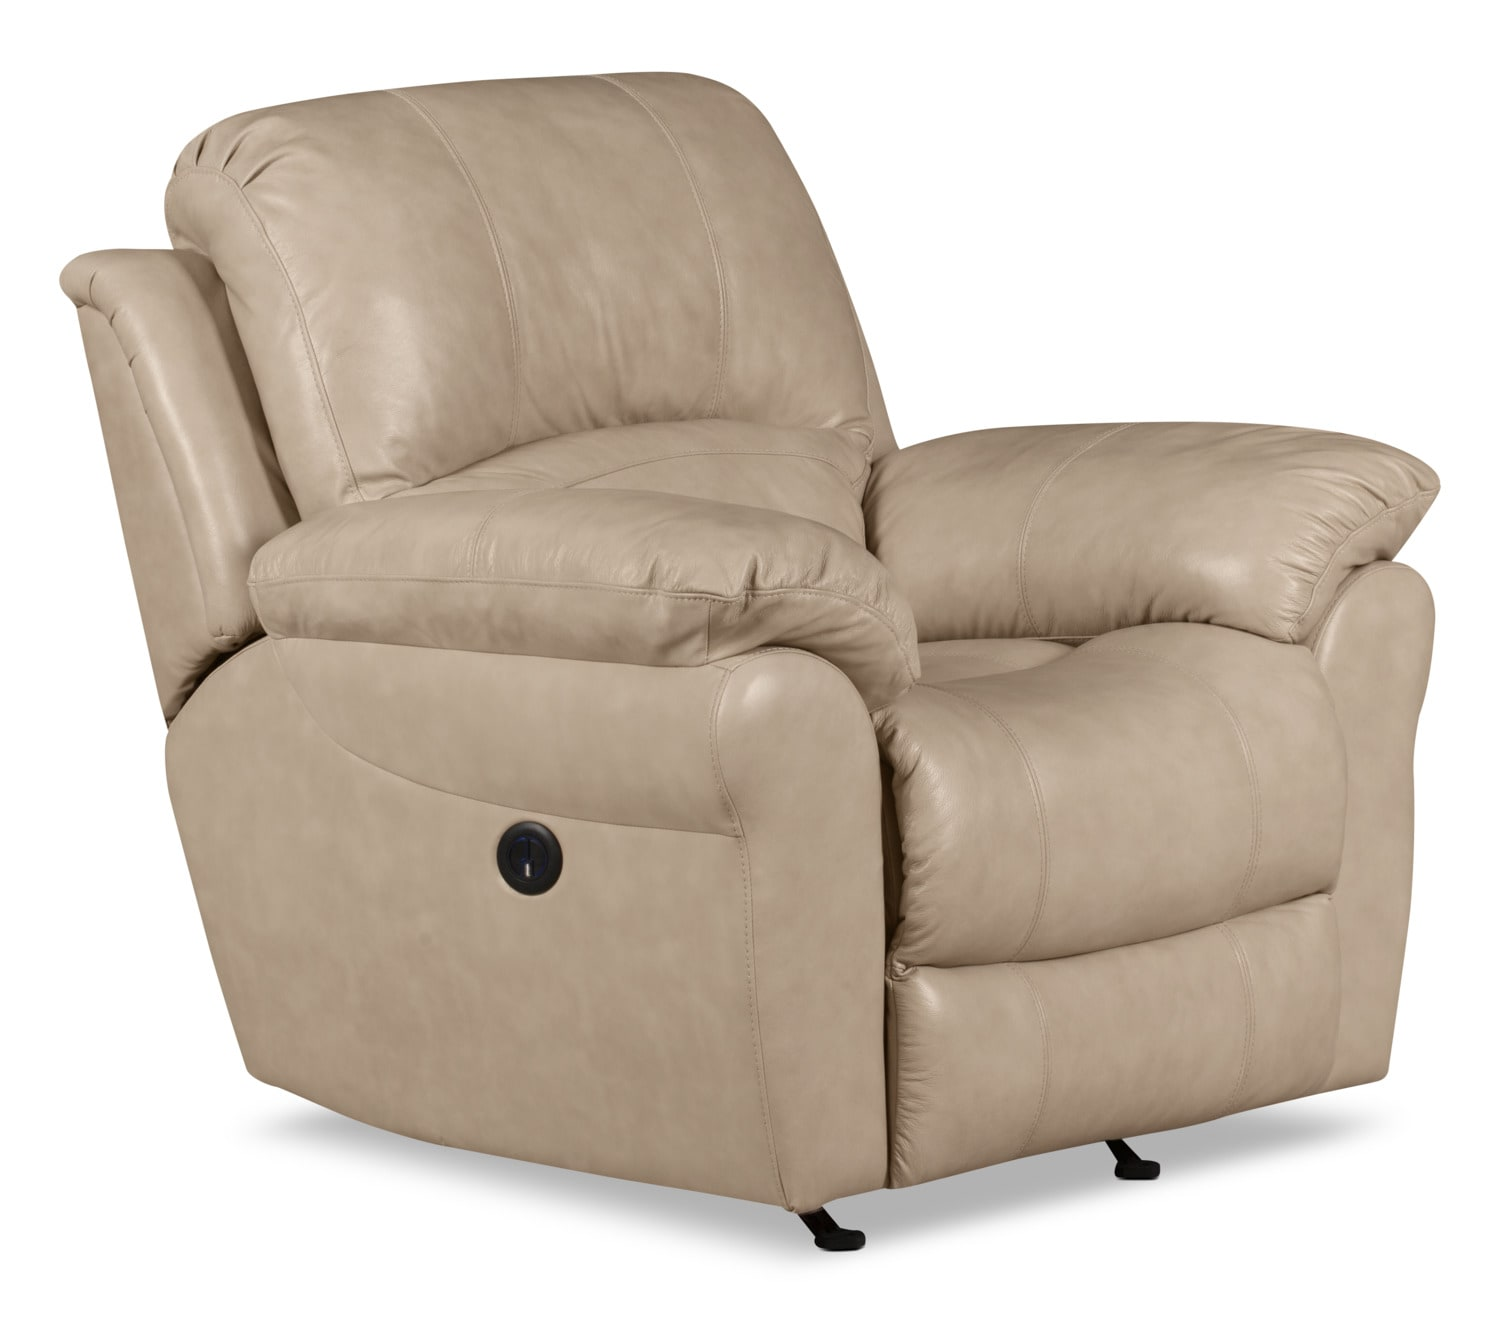 Kobe Genuine Leather Power Reclining Chair – Stone